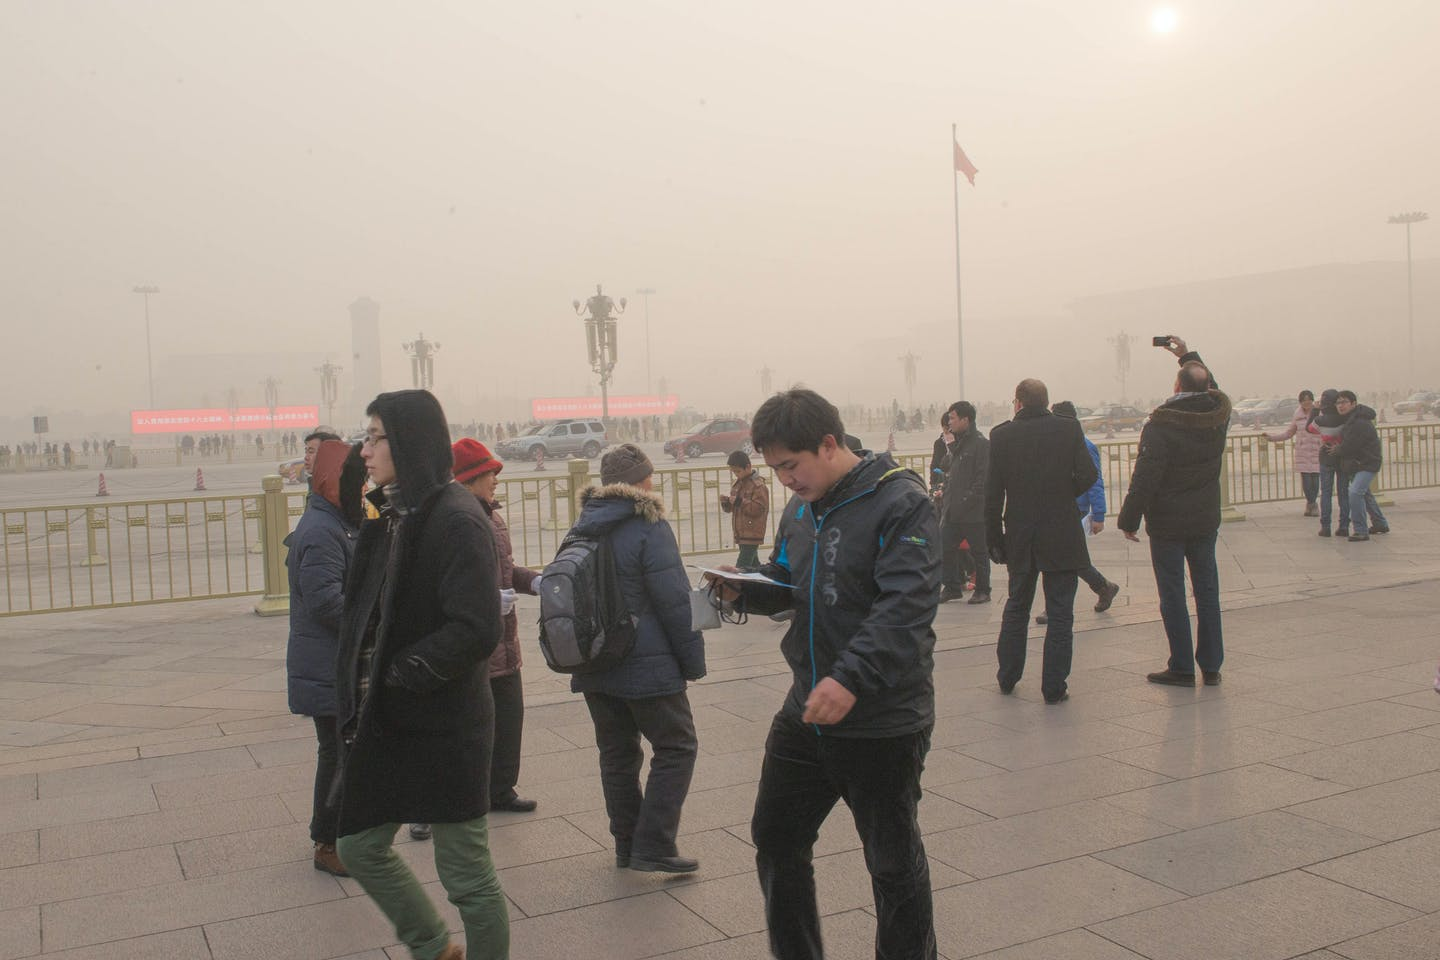 Tian en Men square in thick smog